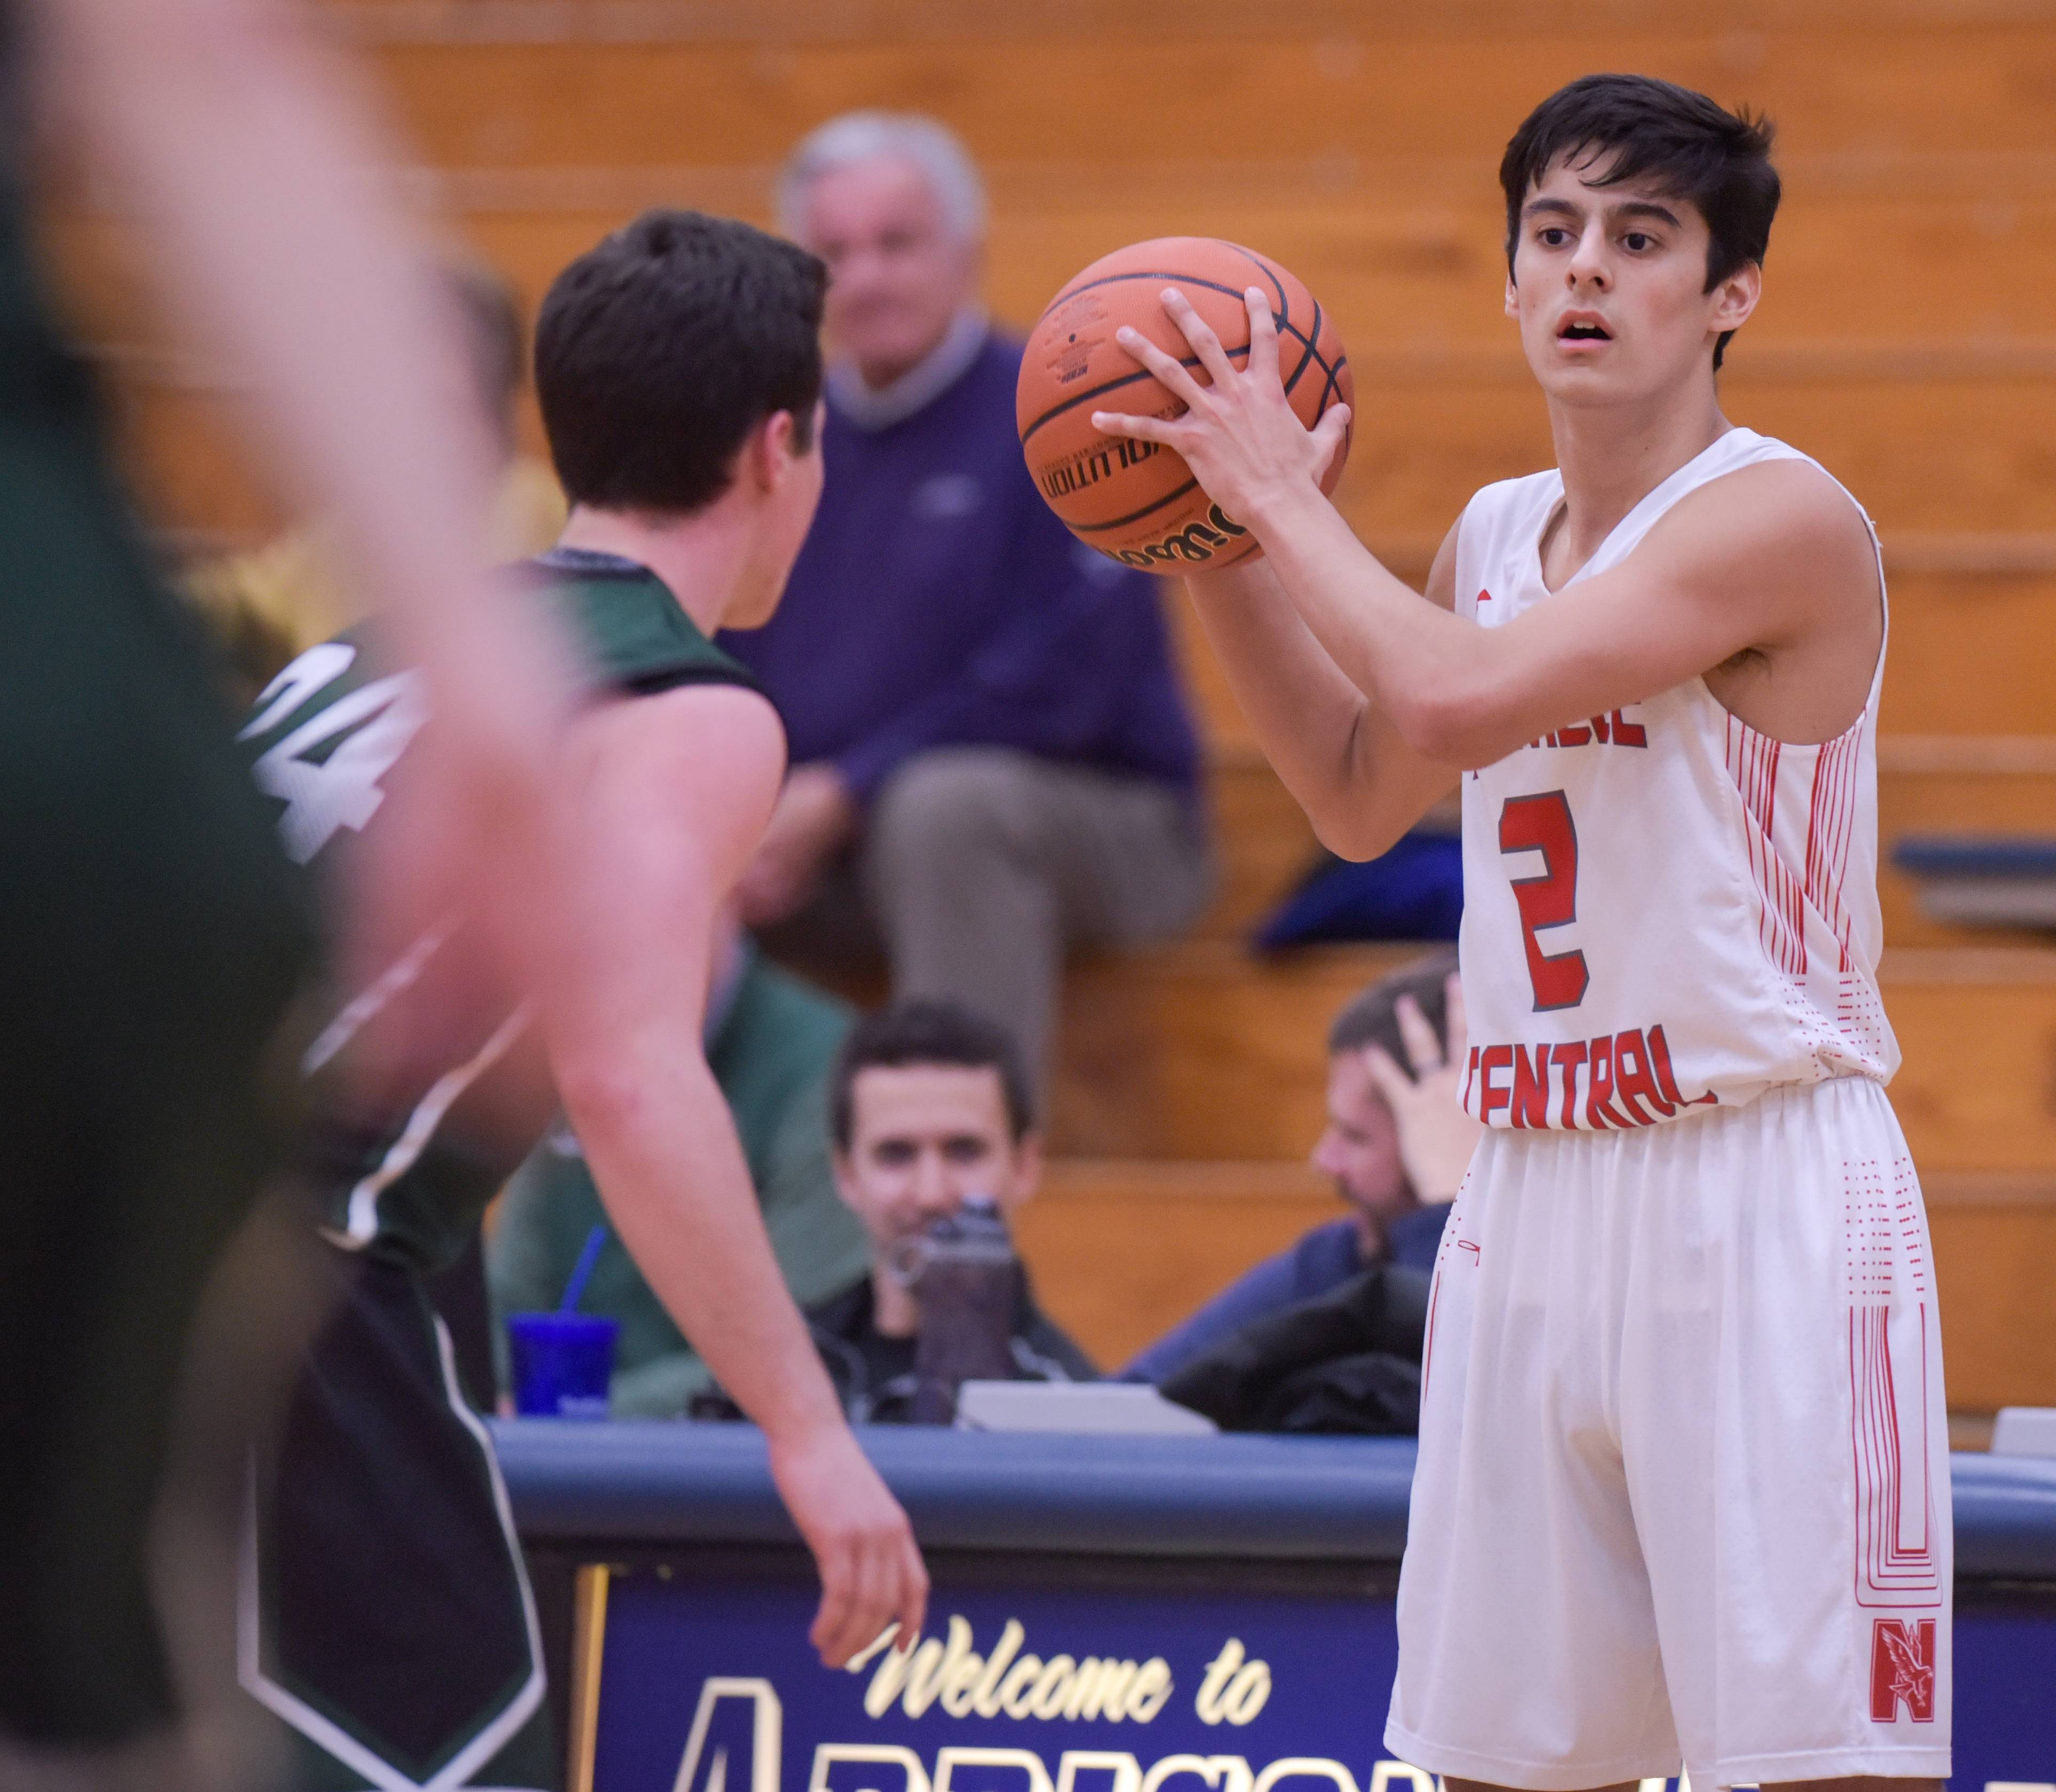 Naperville Central will be looking for another victory Friday when it faces Benet in a Class 4A boys basketball regional final at Addison Trail.